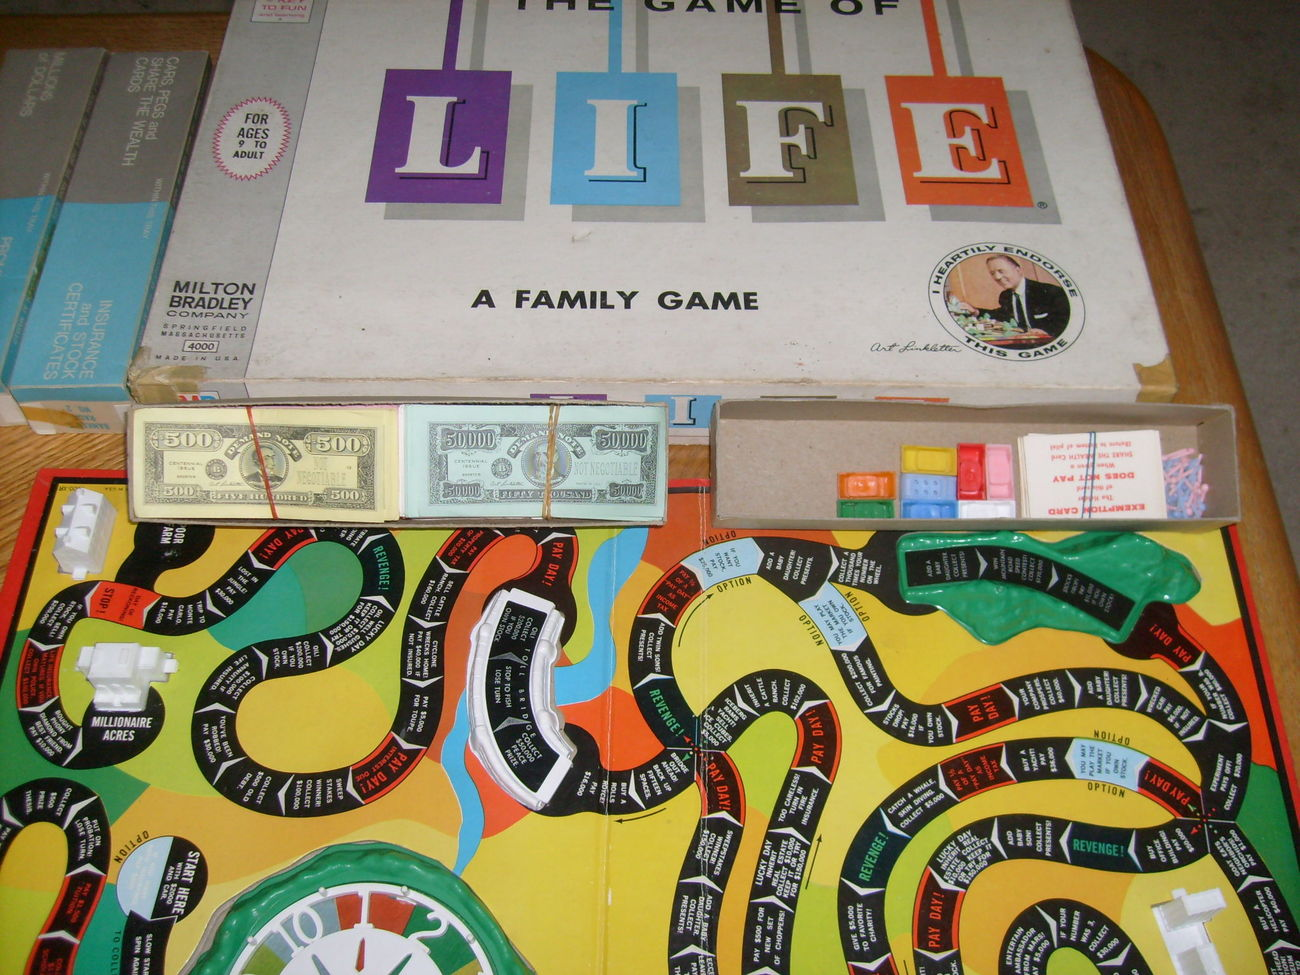 You Don't Say Board Game NOS 1960s Vintage by domesticdebbie  1960 Board Games List